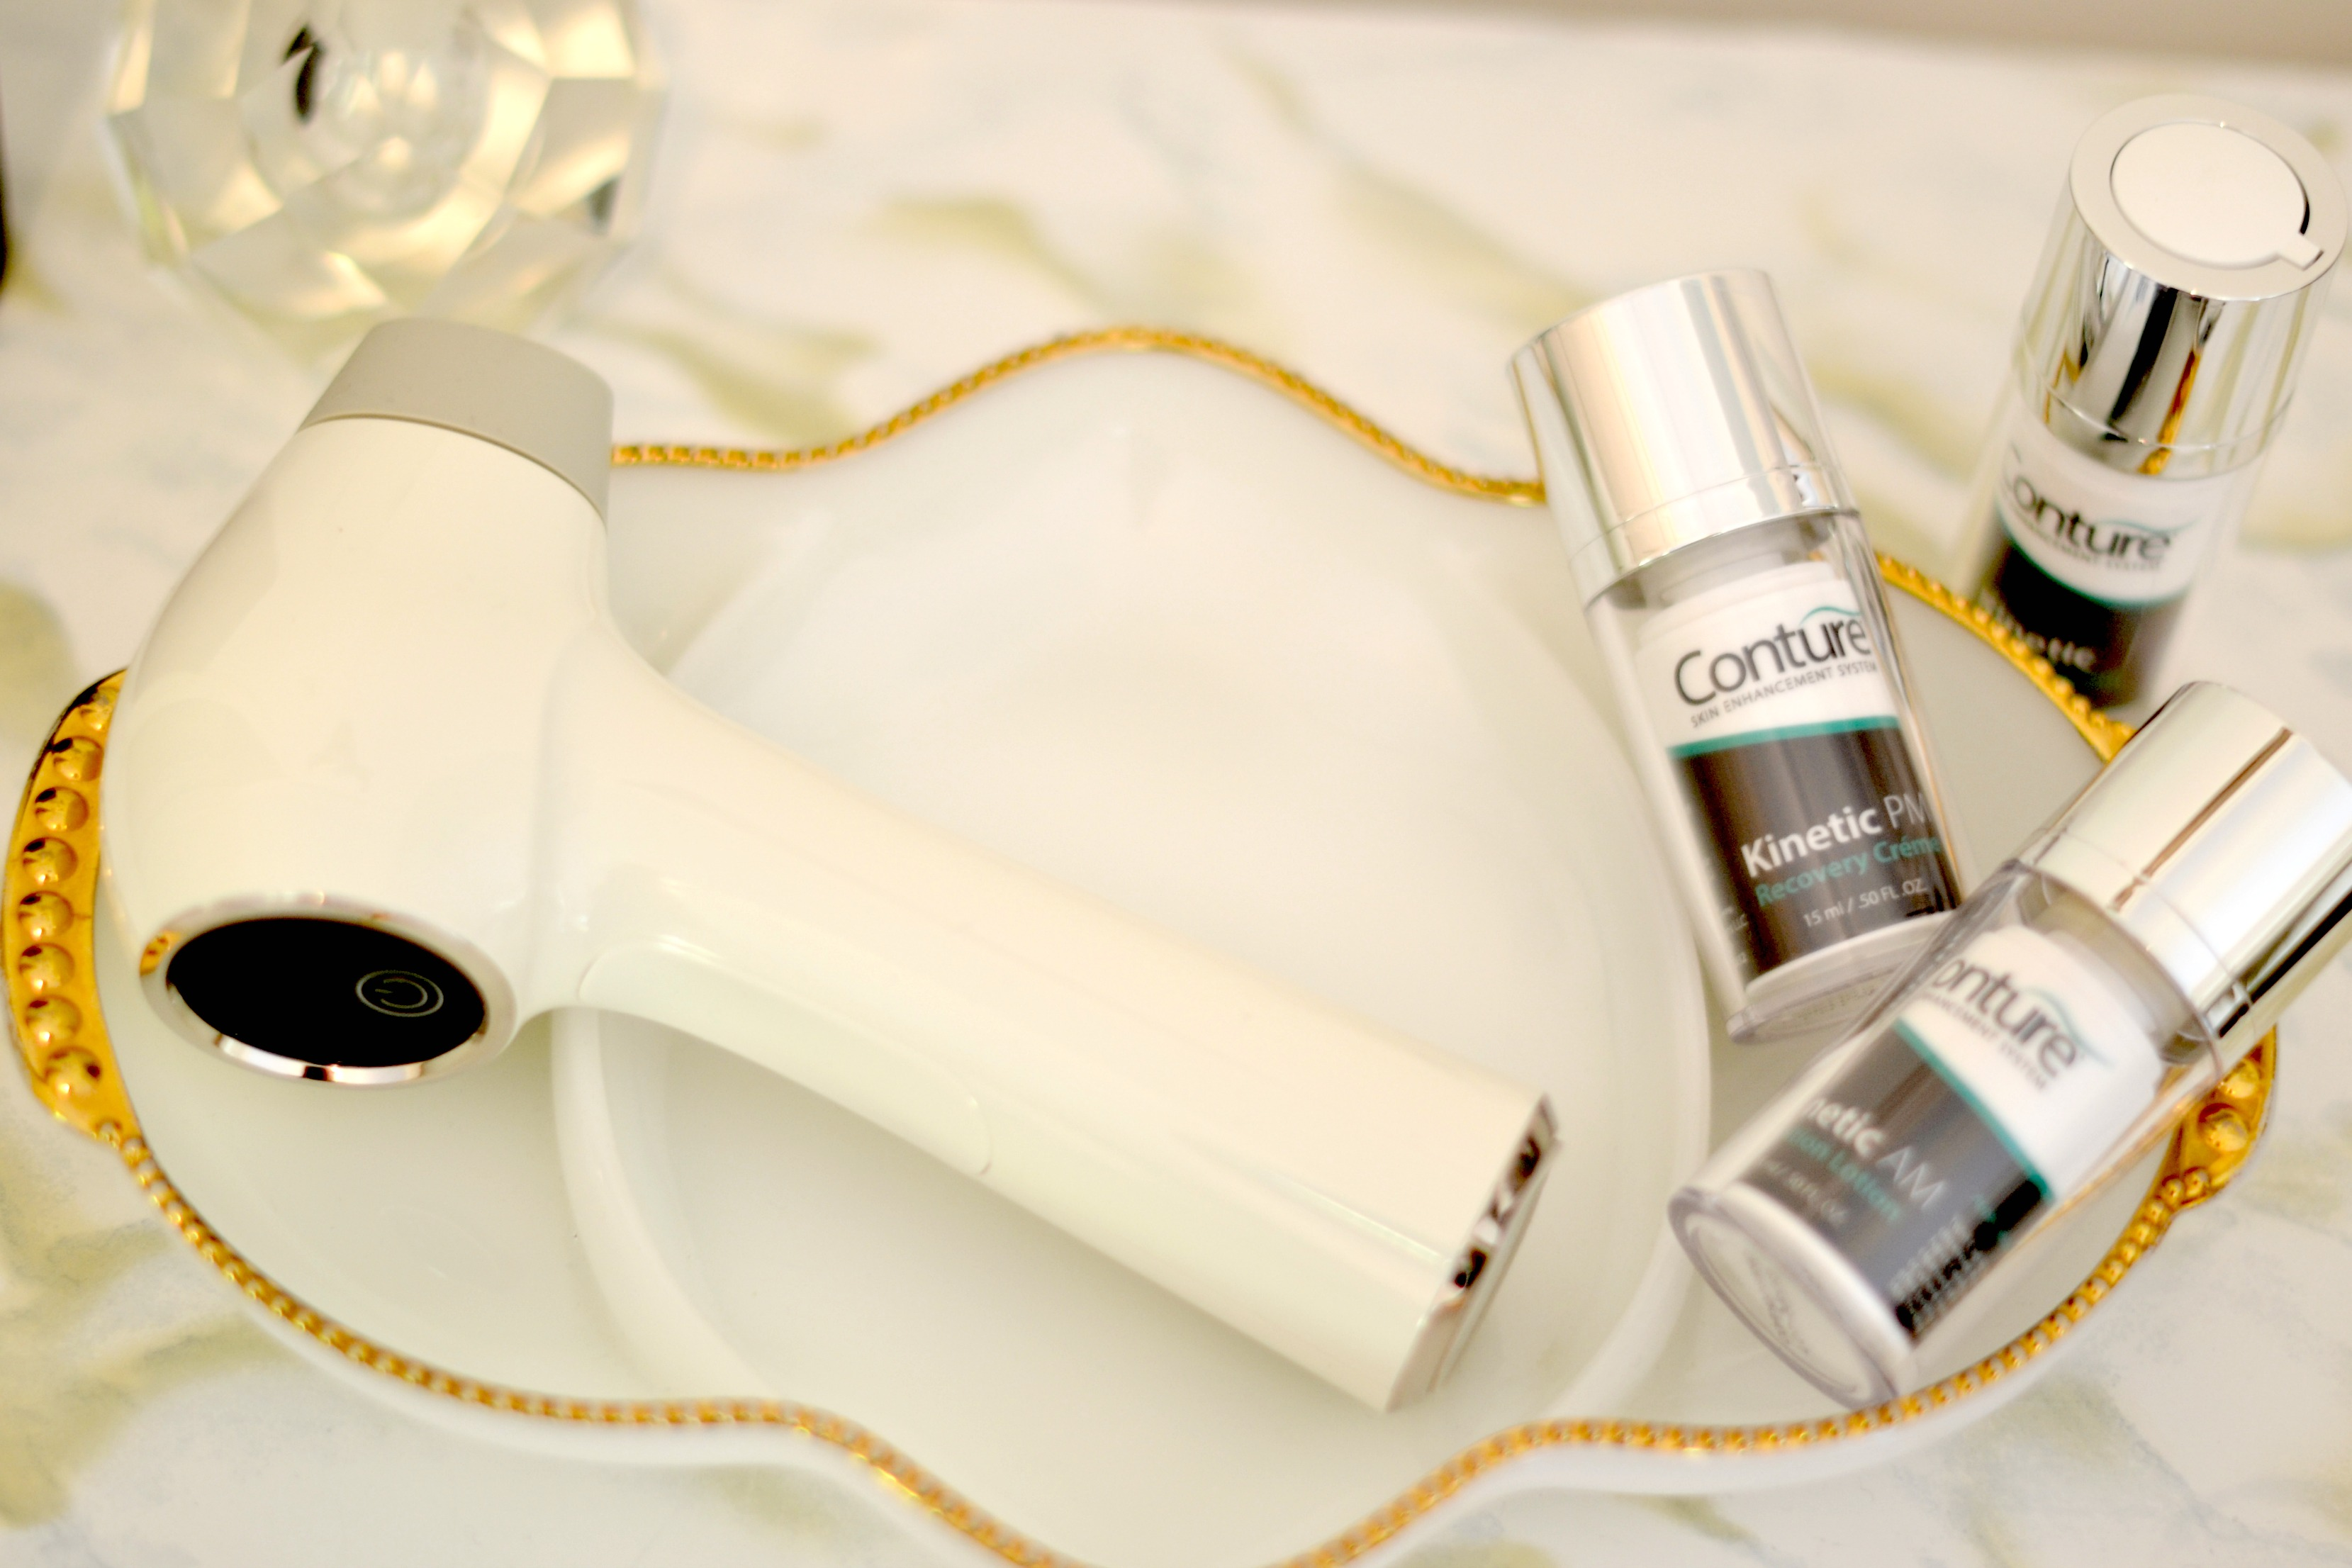 The Conture System To Get Glowing Skin At Home